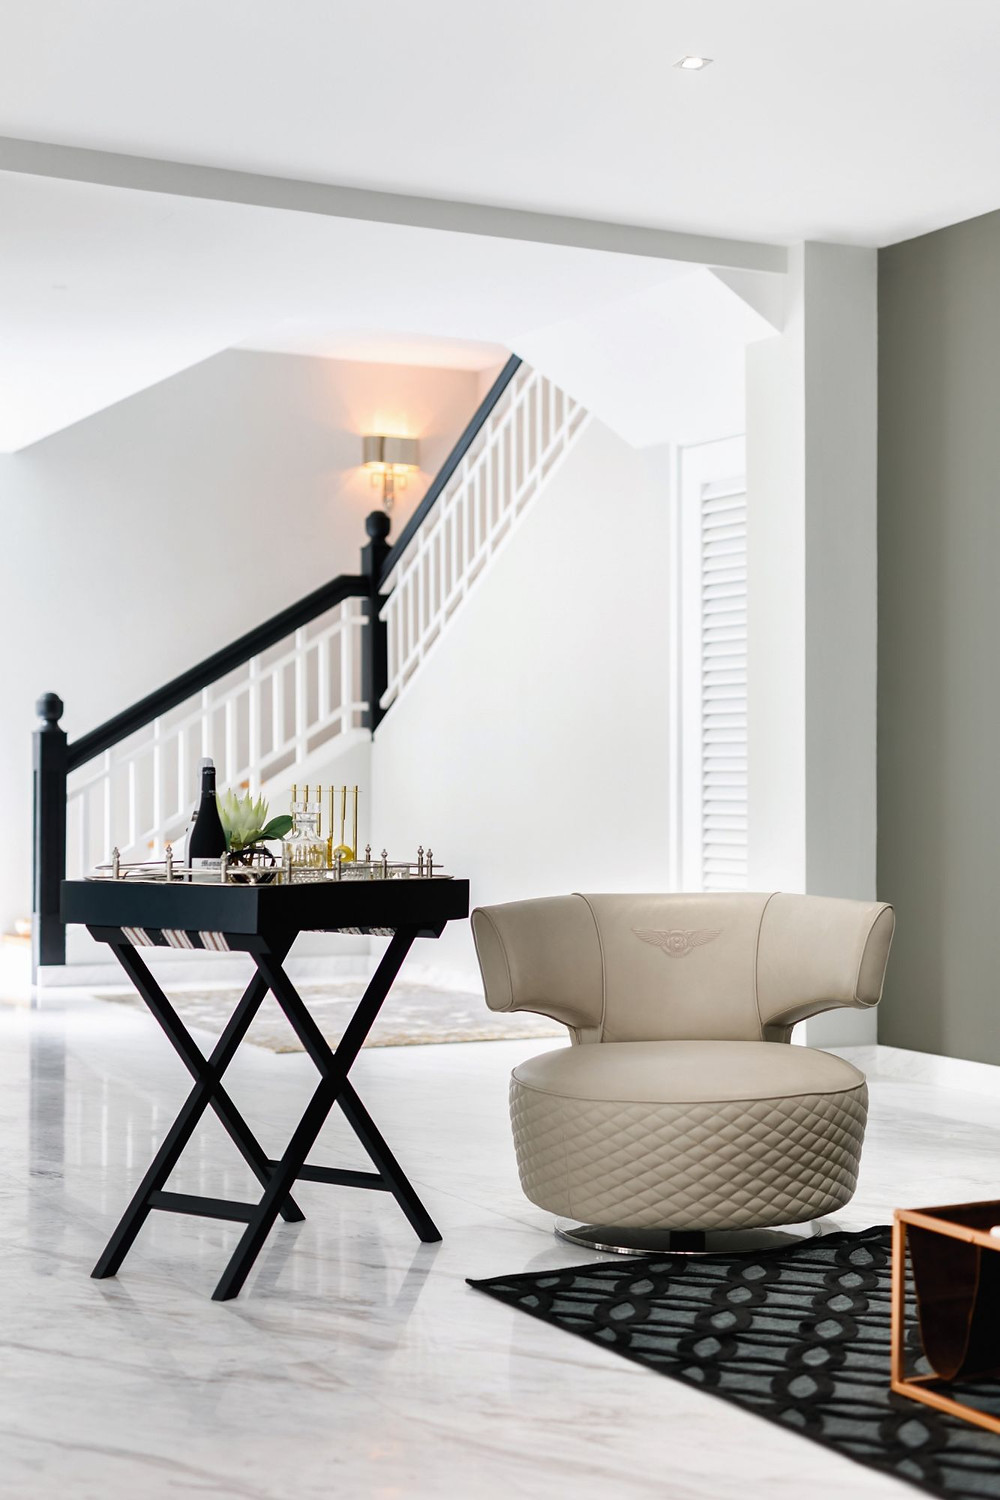 The informal living room of a chic bungalow designed by Designworx Interior Consultant